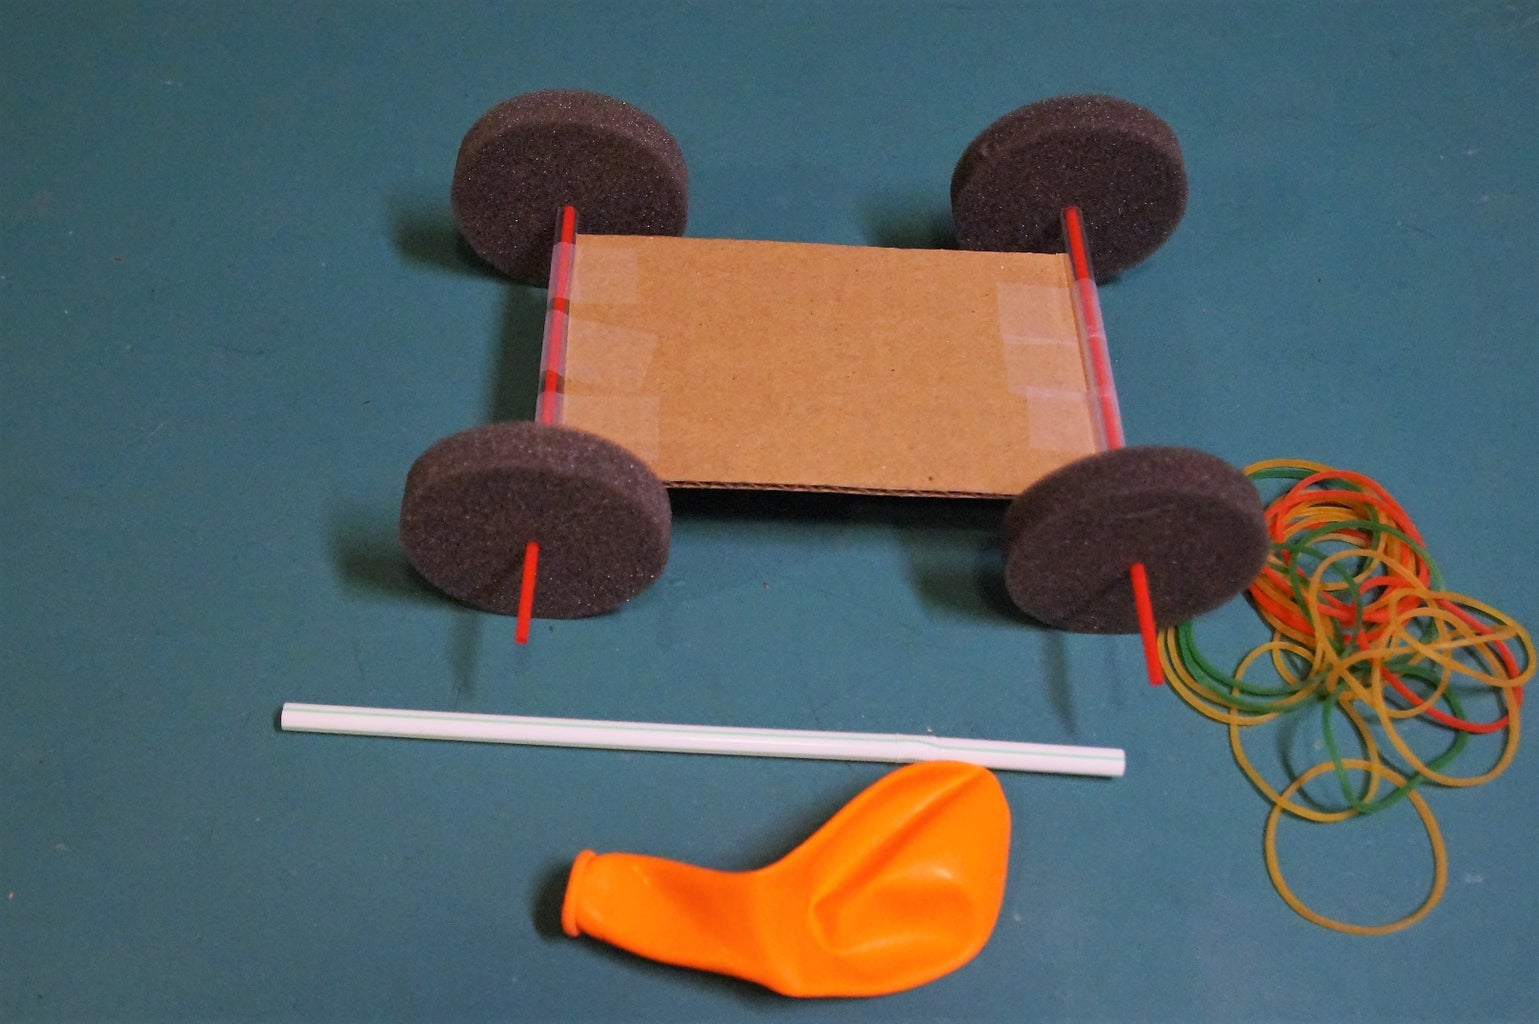 Vehicle Assembly 2